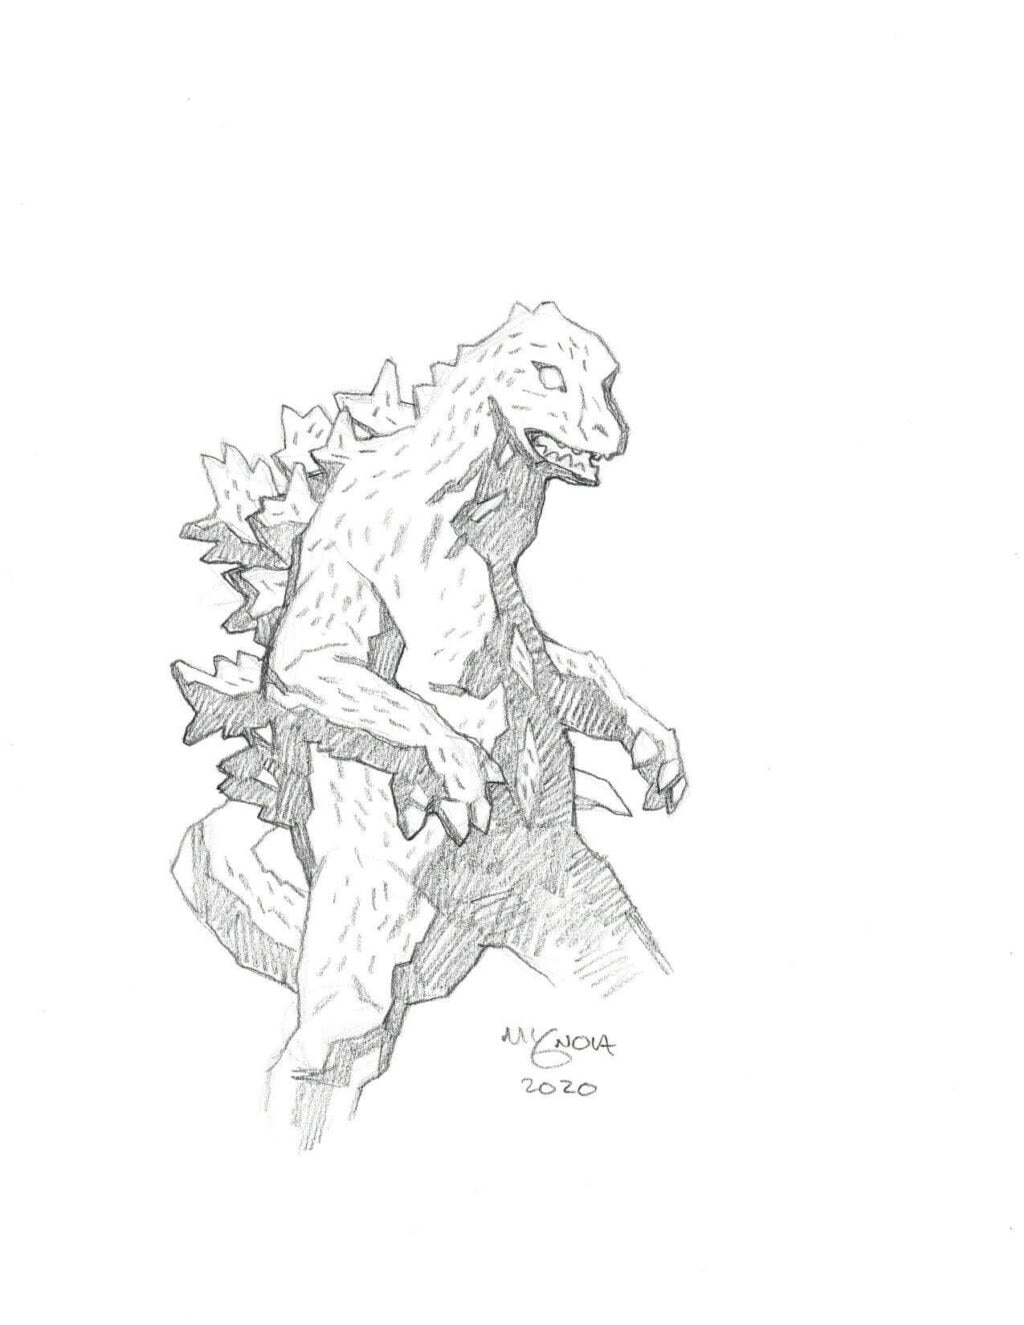 Mike Mignola Godzilla 1 1024x1325 - Mike Mignola Shares Incredible Quarantine Artwork Of All Your Favourite Characters